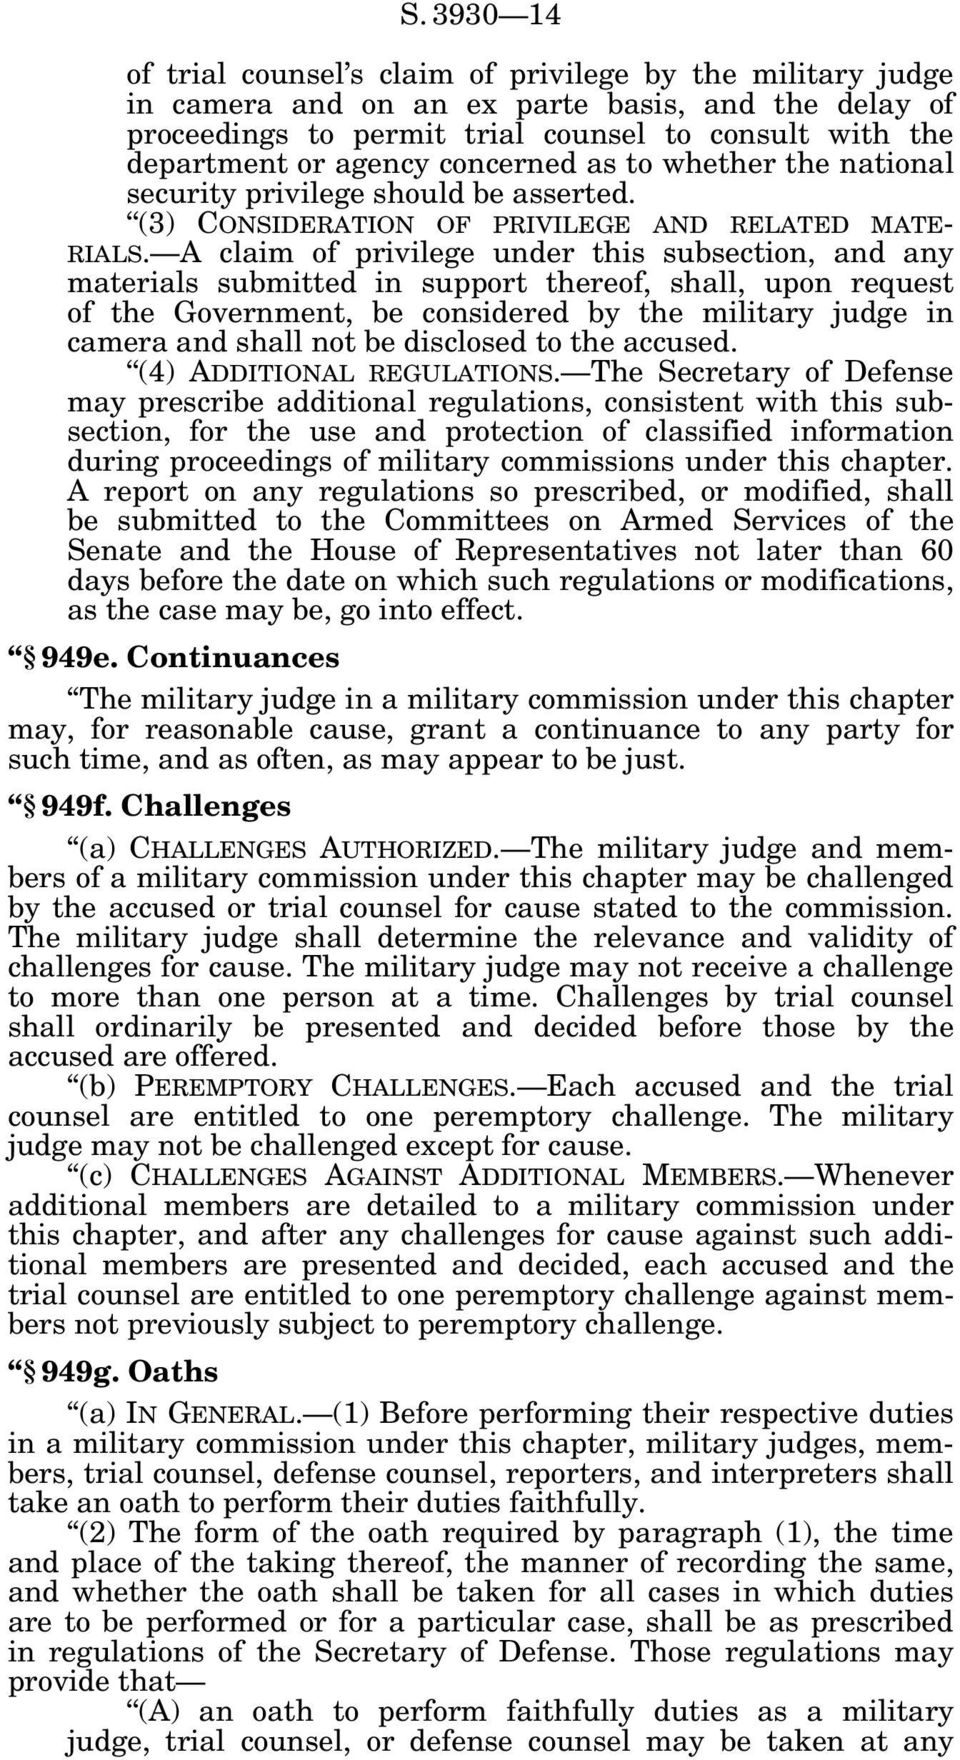 A claim of privilege under this subsection, and any materials submitted in support thereof, shall, upon request of the Government, be considered by the military judge in camera and shall not be